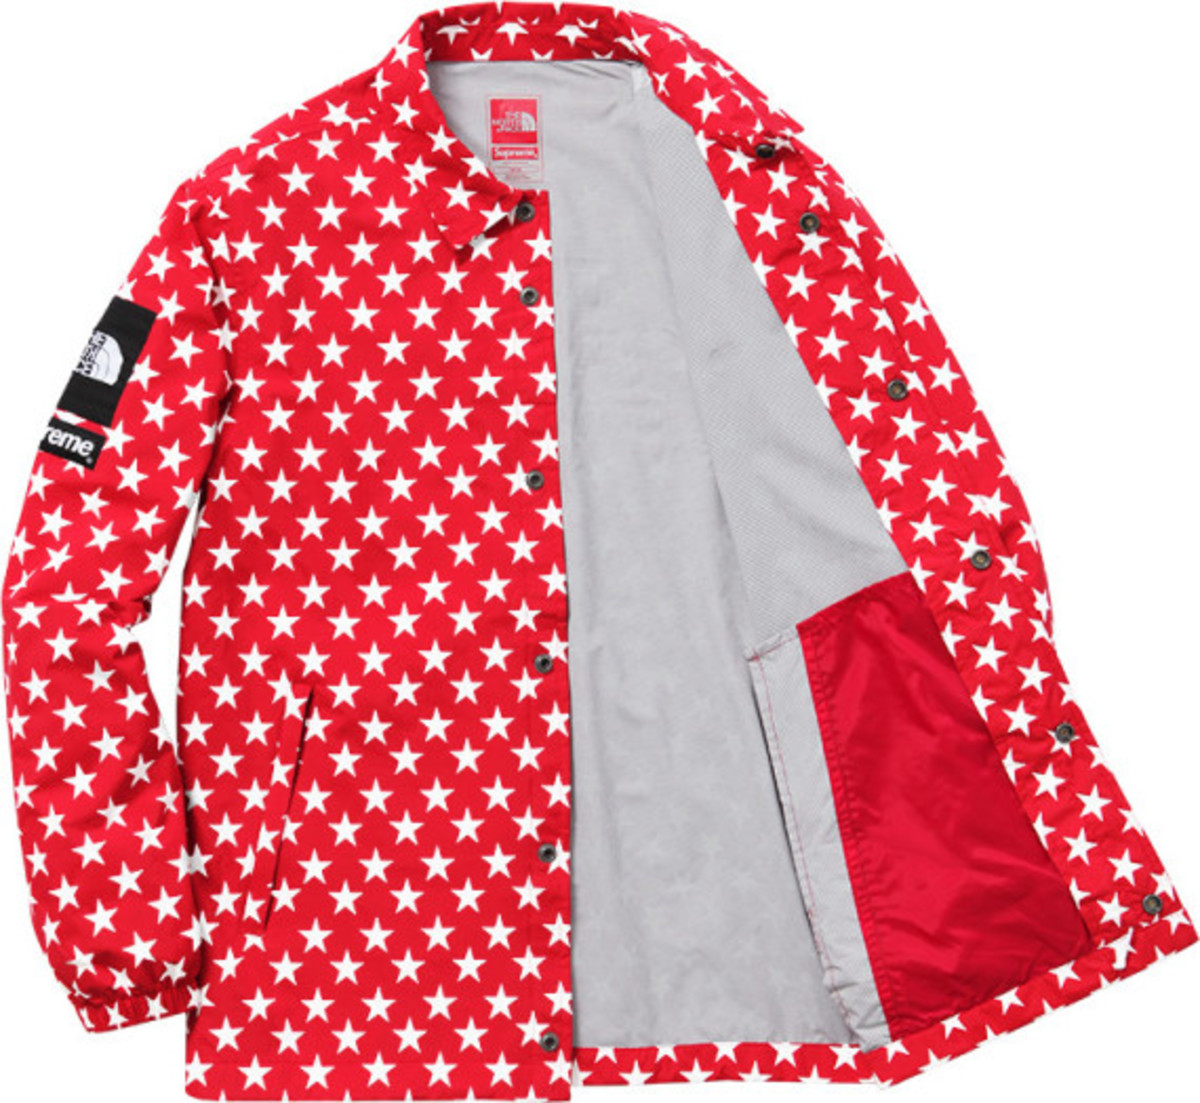 Supreme x The North Face - Spring/Summer 2015 Apparel and Gear Collection - 15